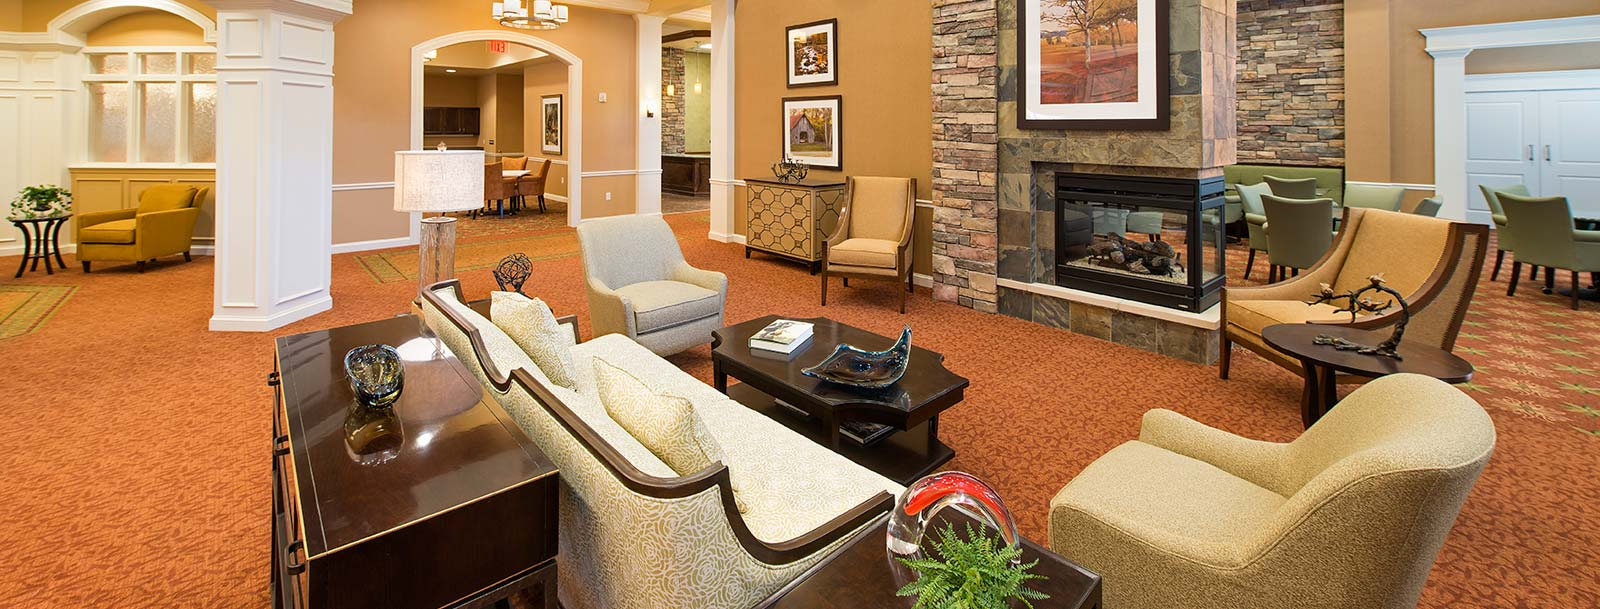 Senior living facility has a relaxing common room